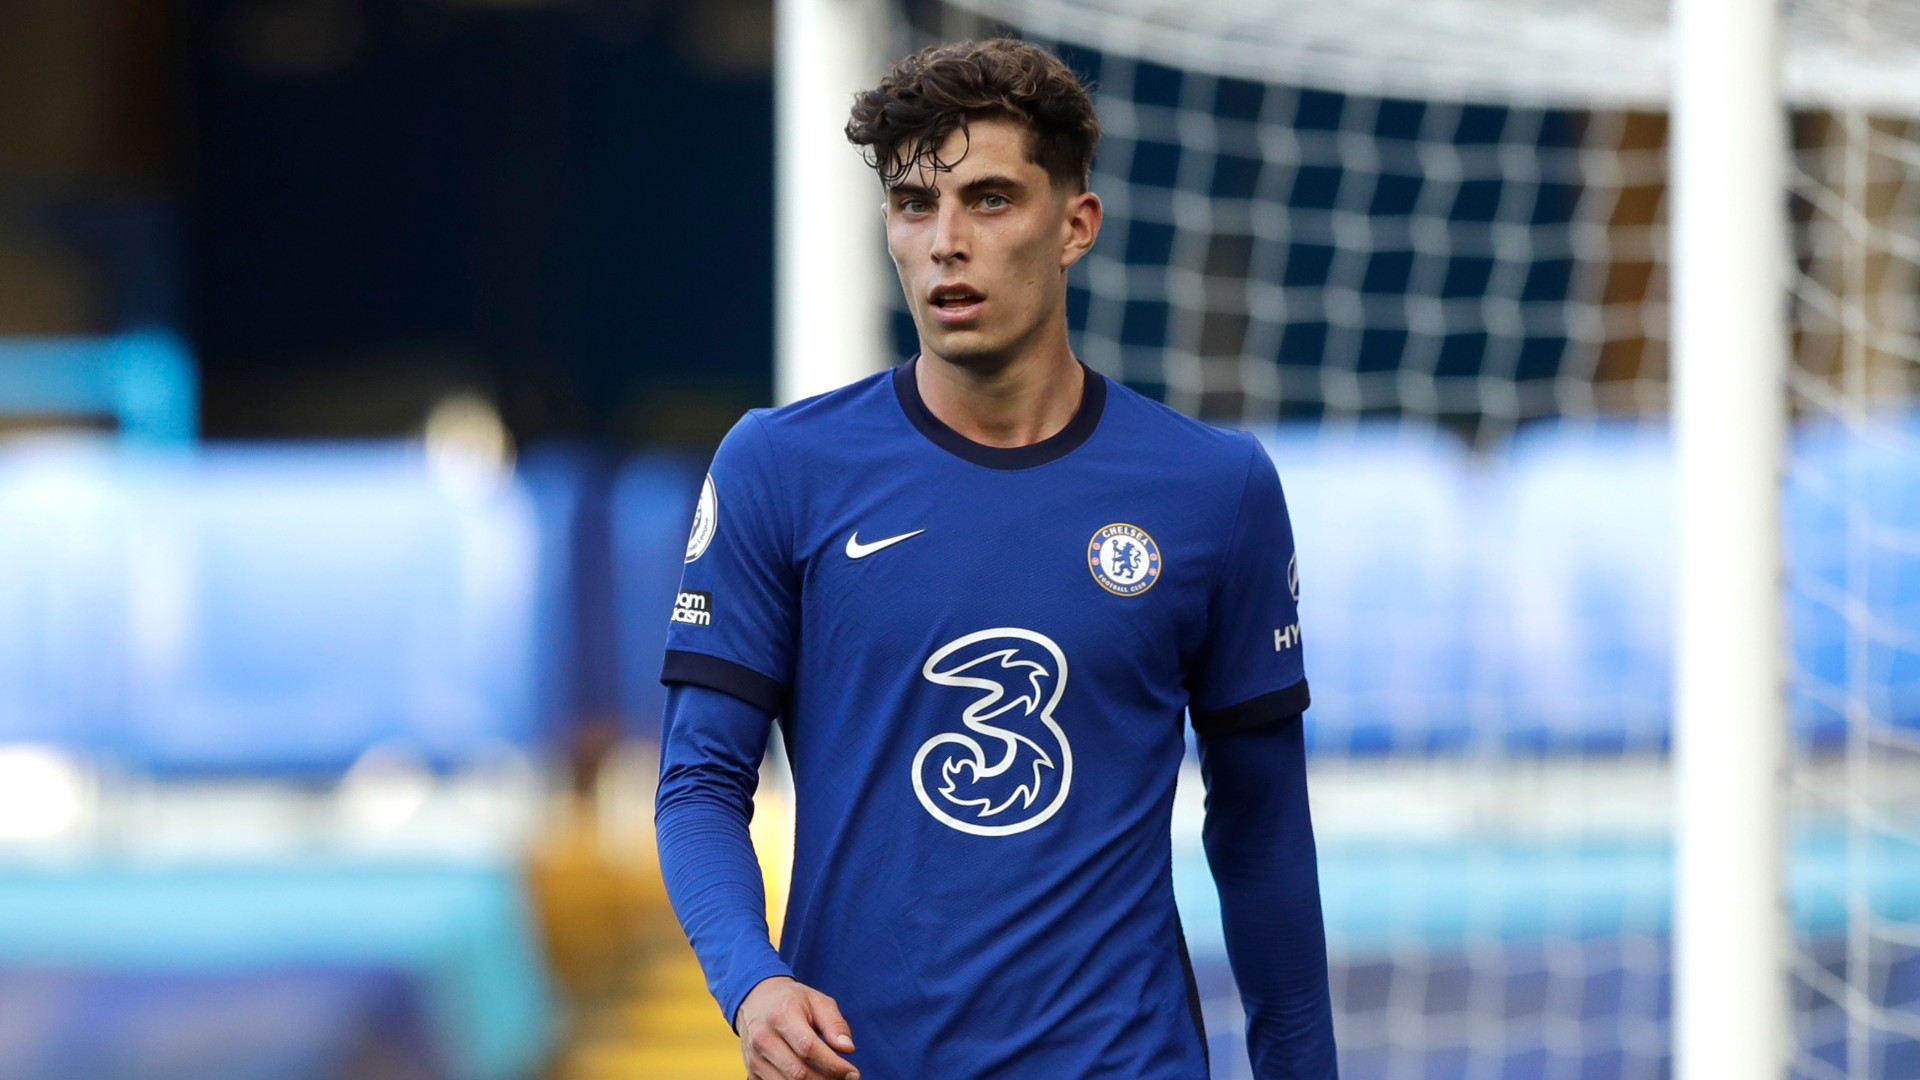 Chelsea don't know what to do with Havertz – Carragher questions summer signing